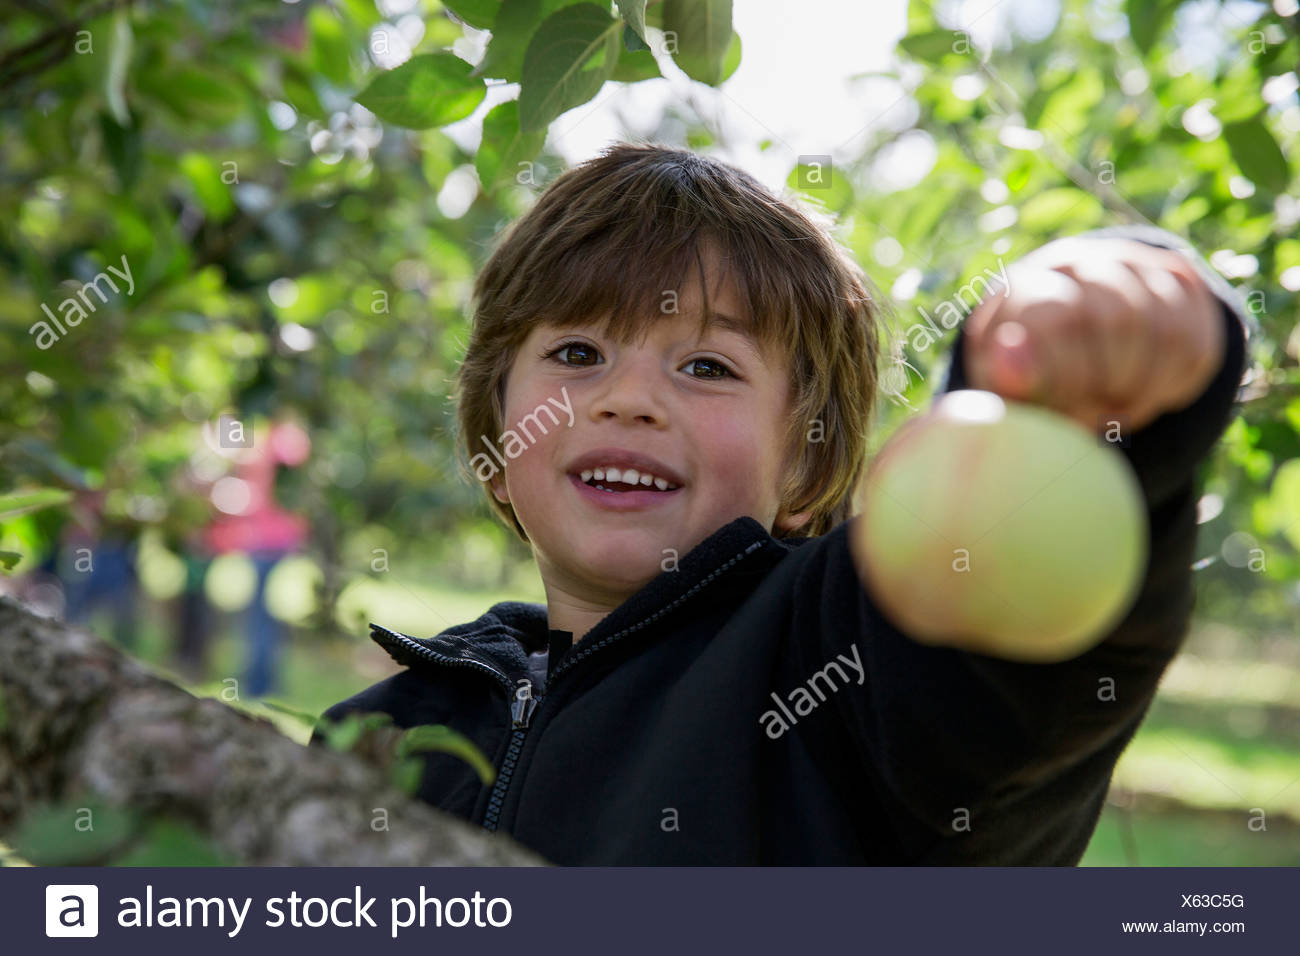 Close Up Fruit Child Stock Photos Amp Close Up Fruit Child